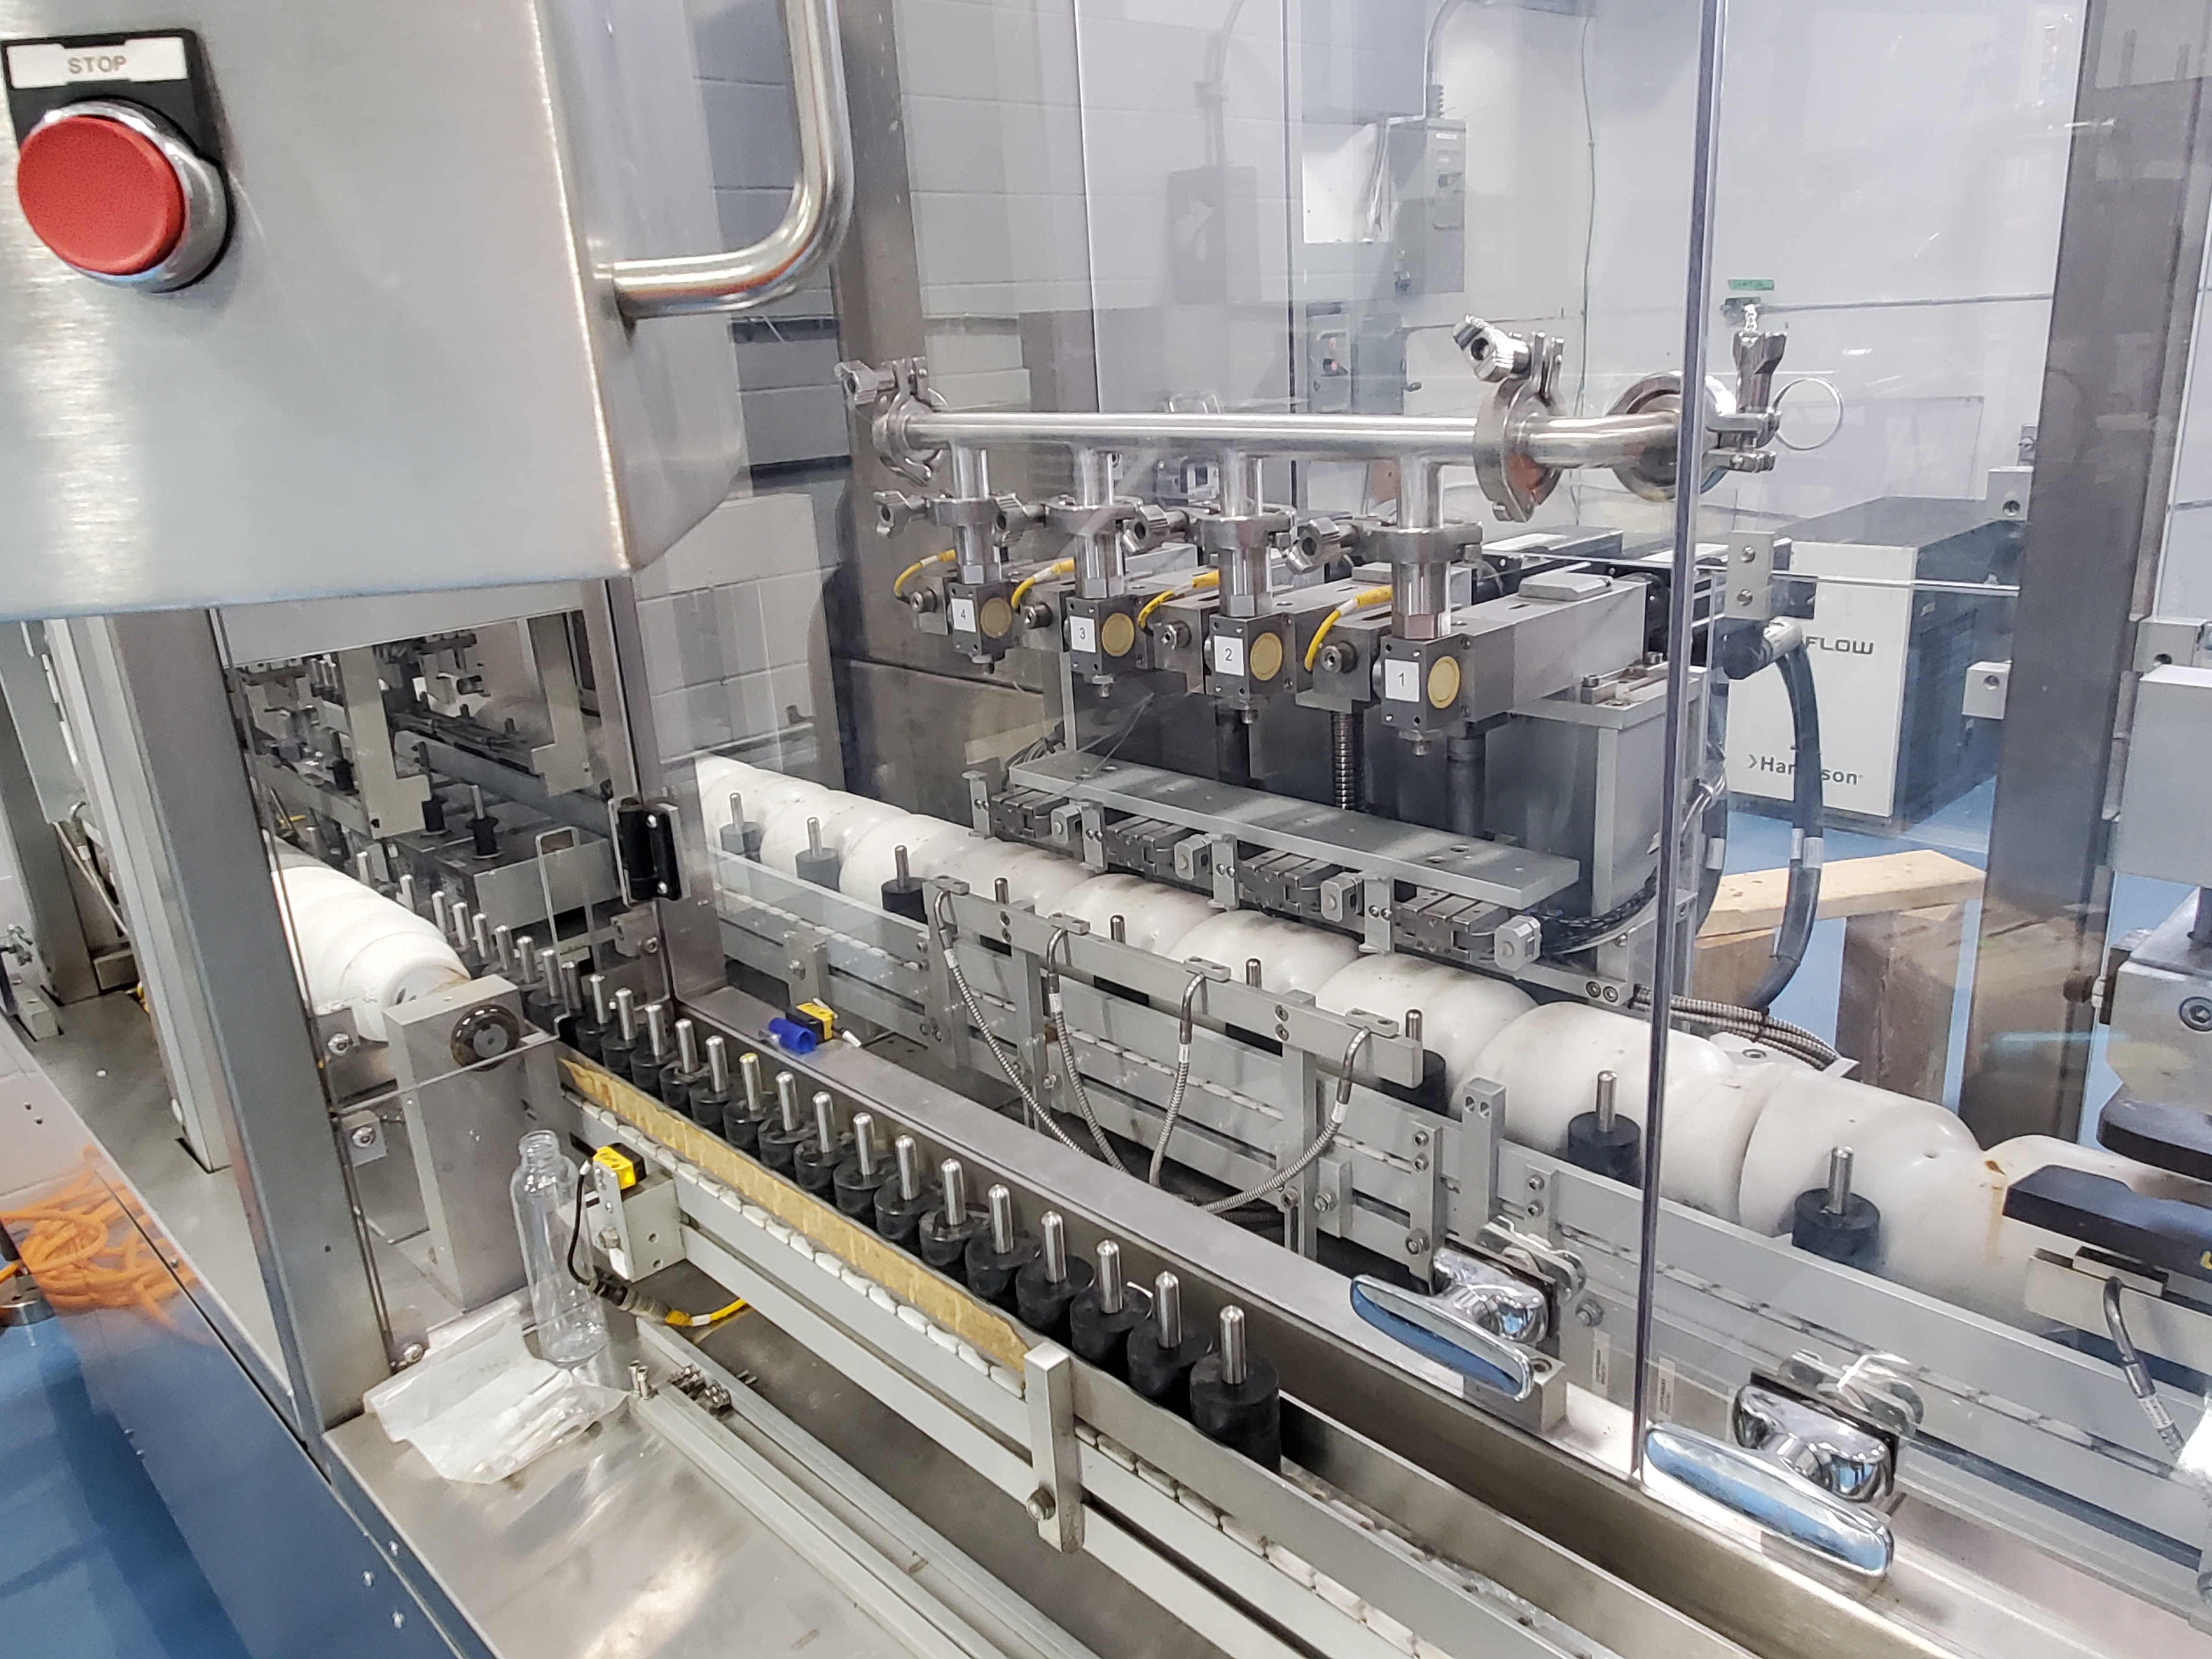 Hibar gel liquid filling line, model P0493, stainless steel construction, intermittent motion, - Image 3 of 3